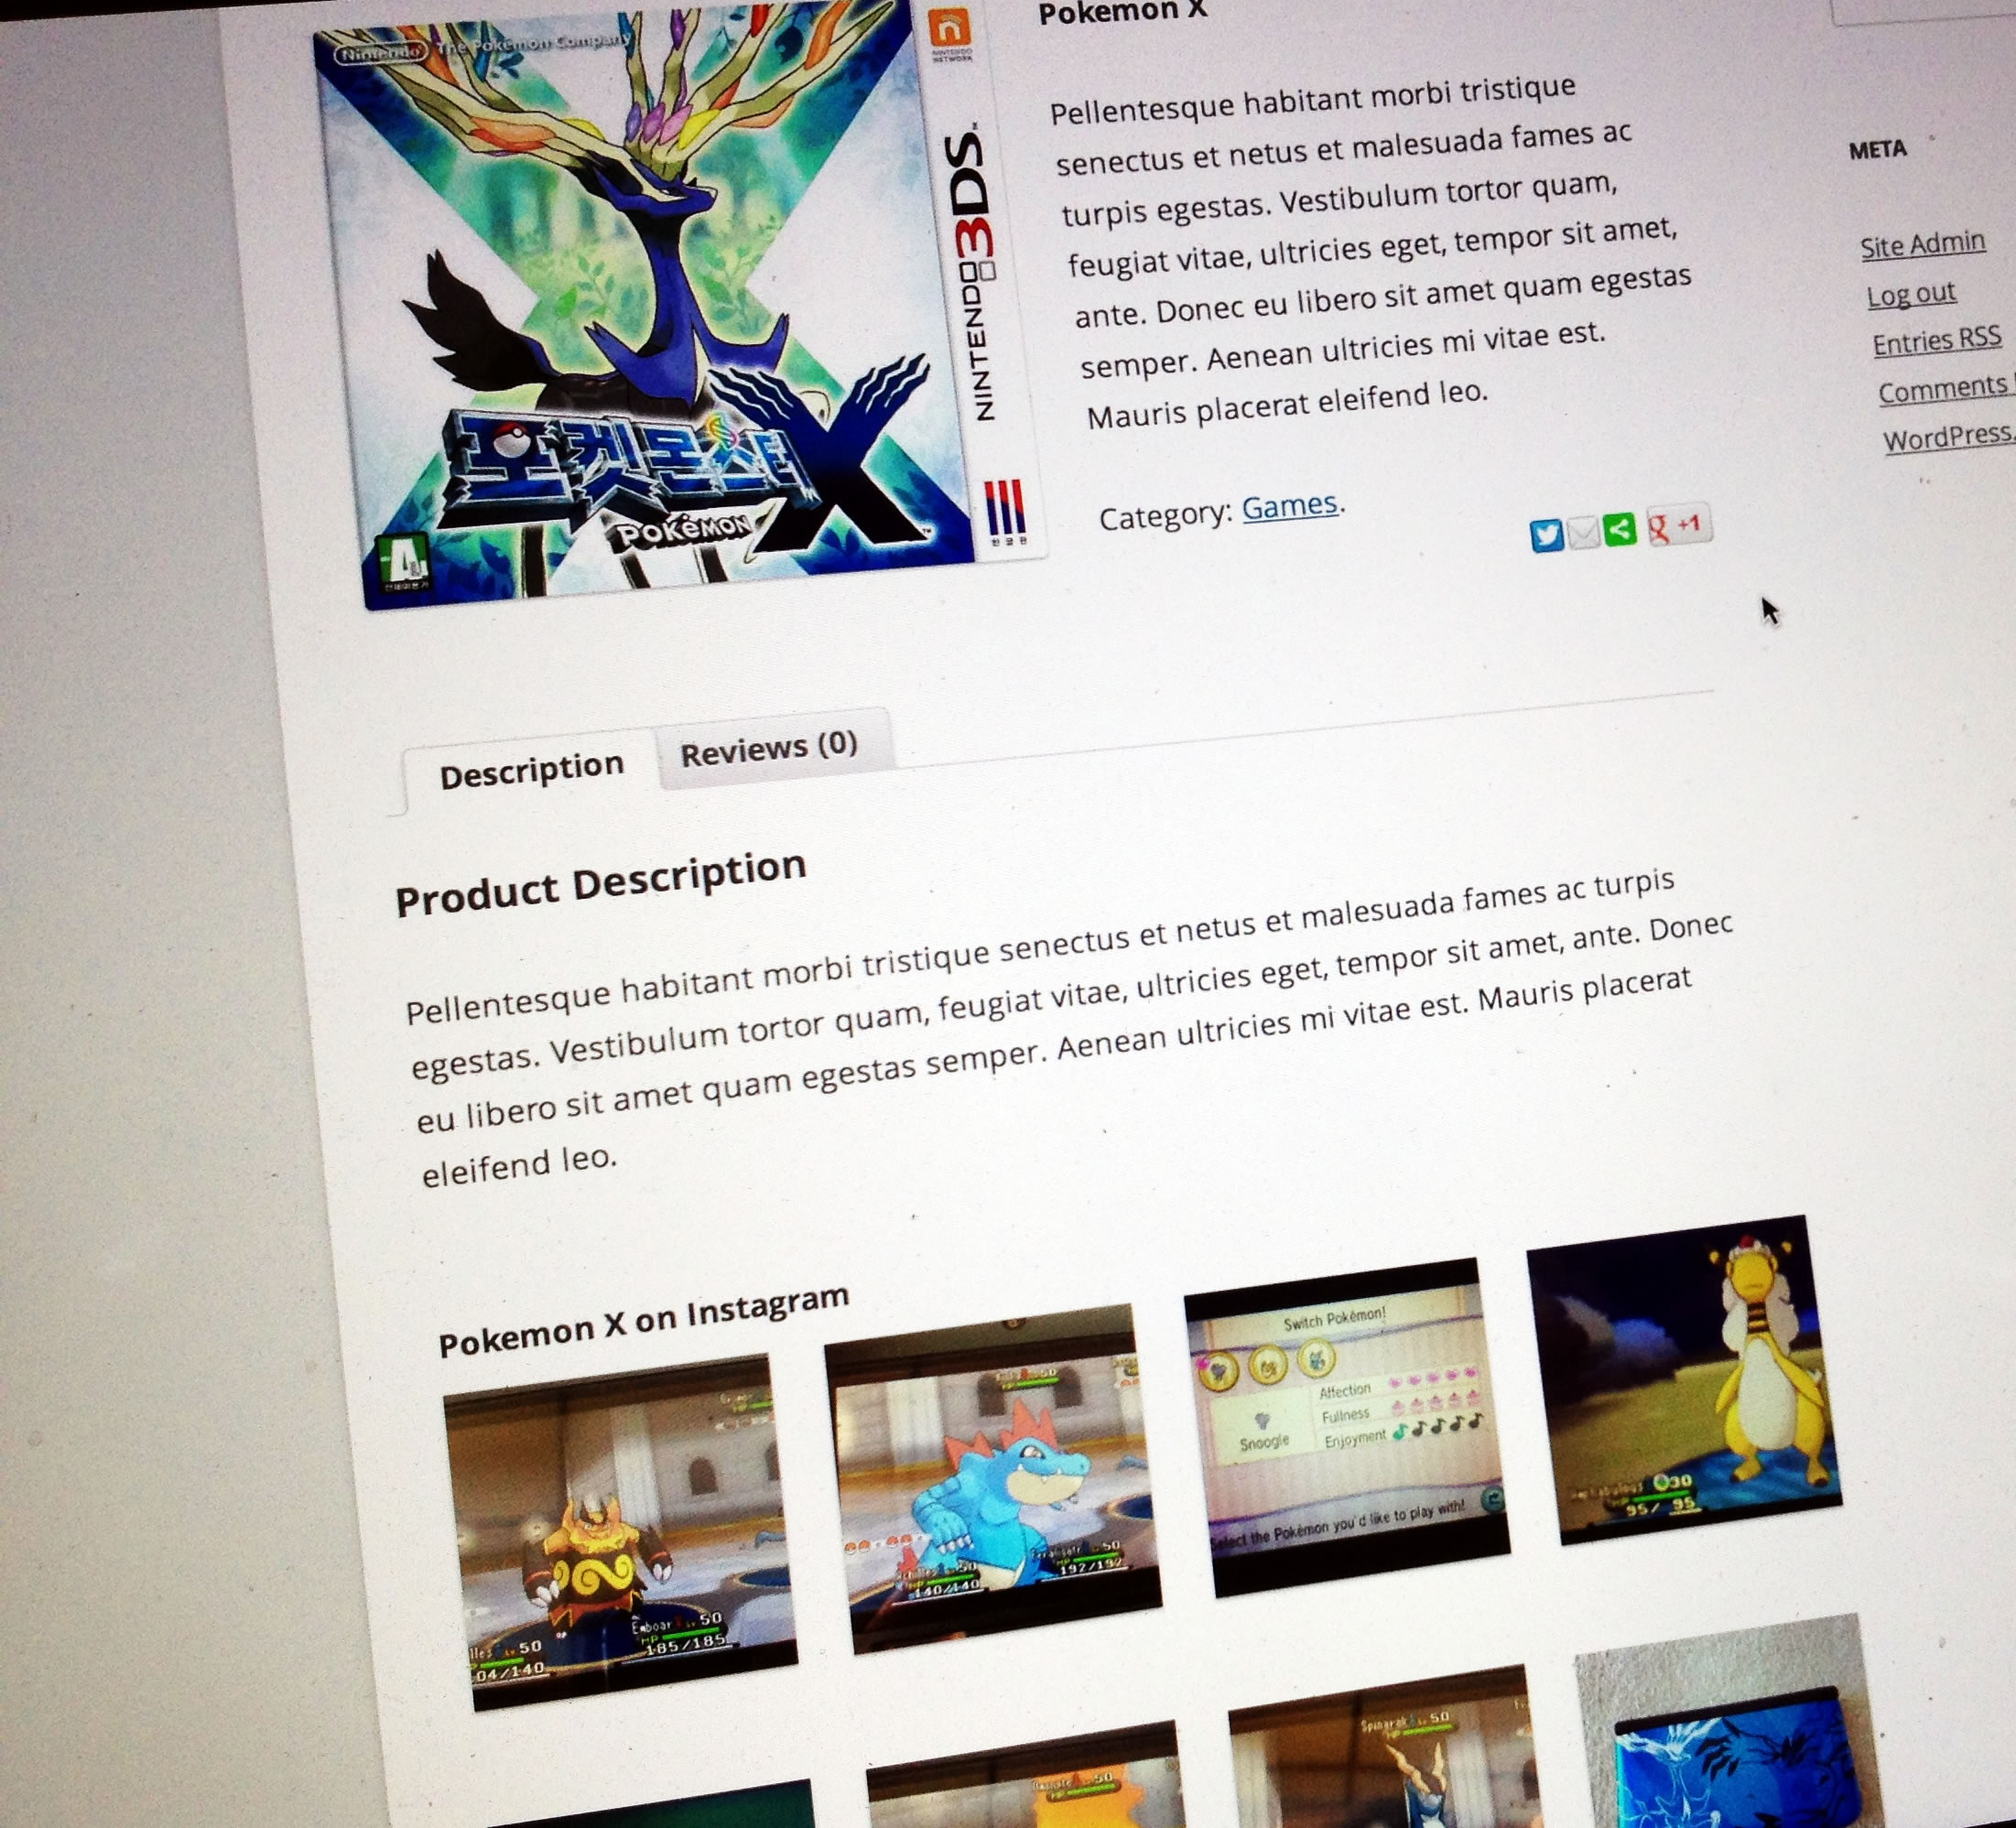 Display photos that include a particular Instagram hashtag on your product page